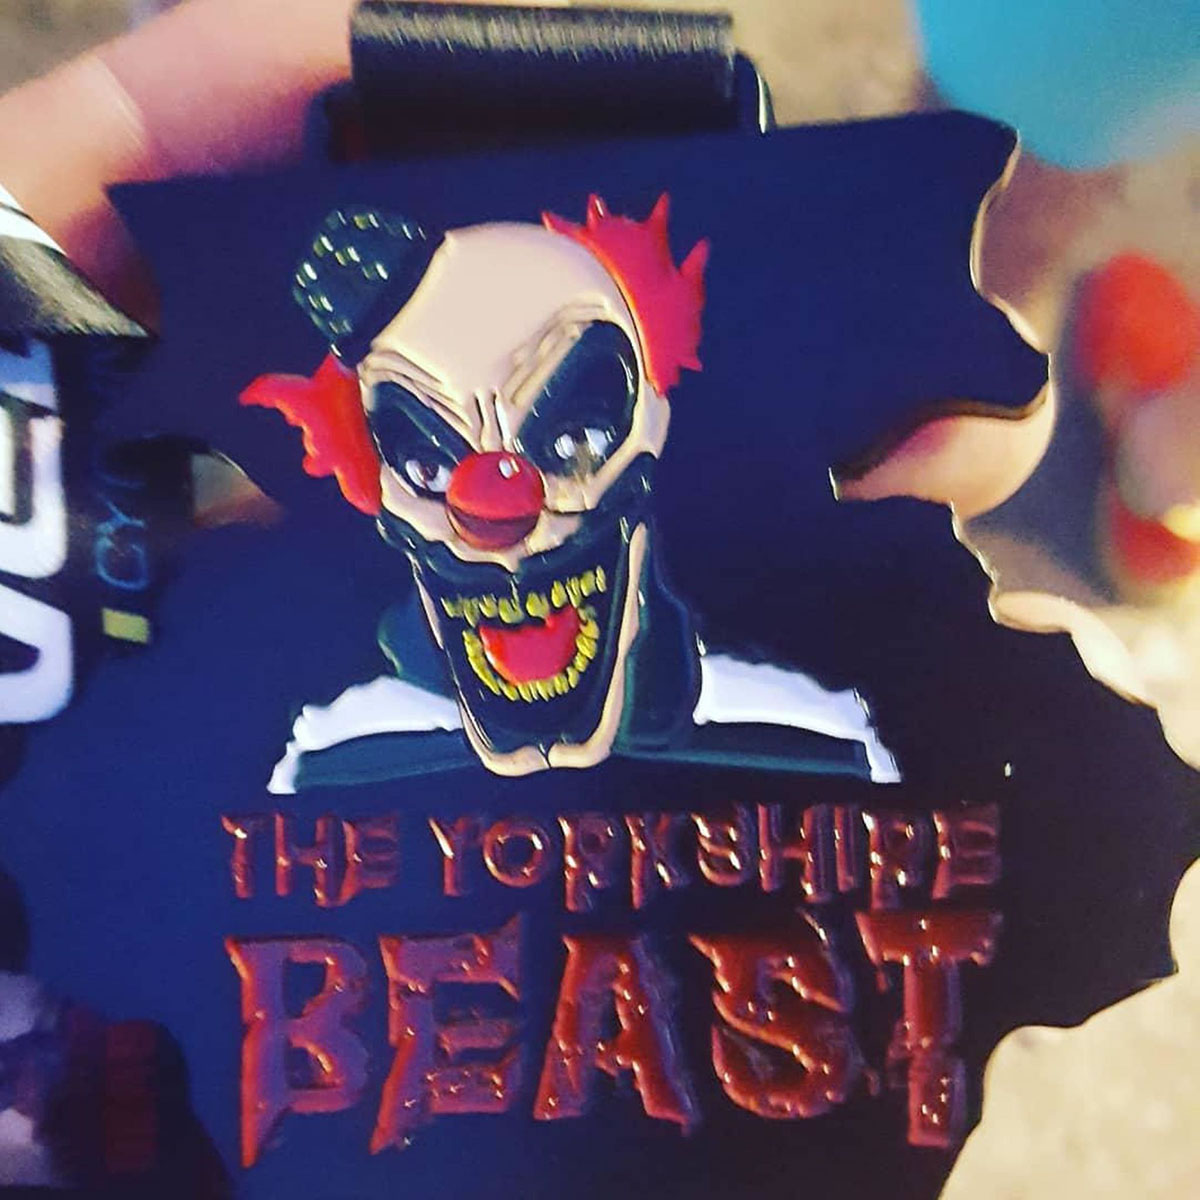 the yorkshire beast medal 2018